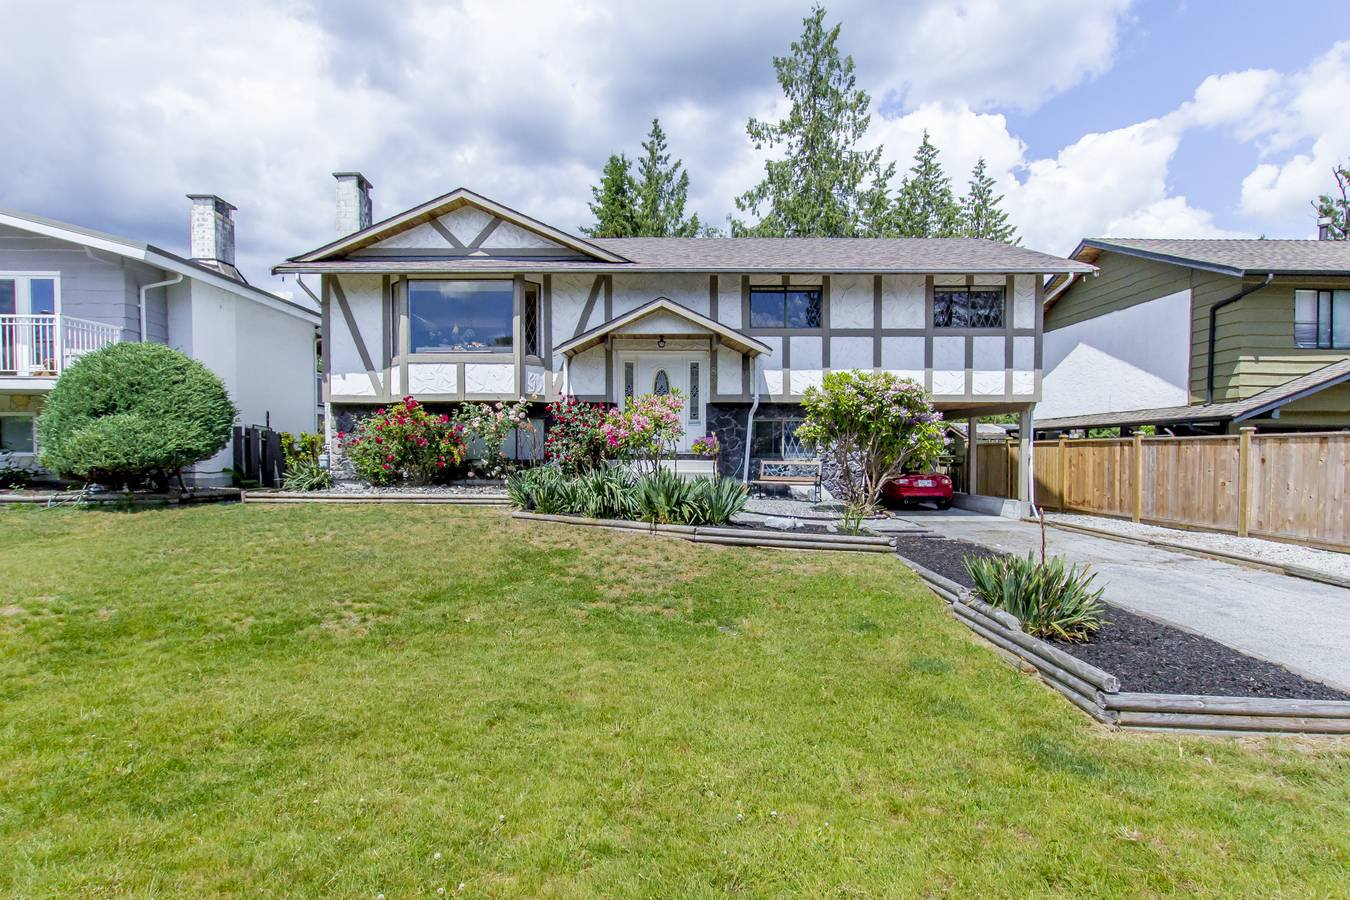 """Main Photo: 837 HEMLOCK Crescent in Port Coquitlam: Lincoln Park PQ House for sale in """"SUN VALLEY"""" : MLS®# R2276084"""